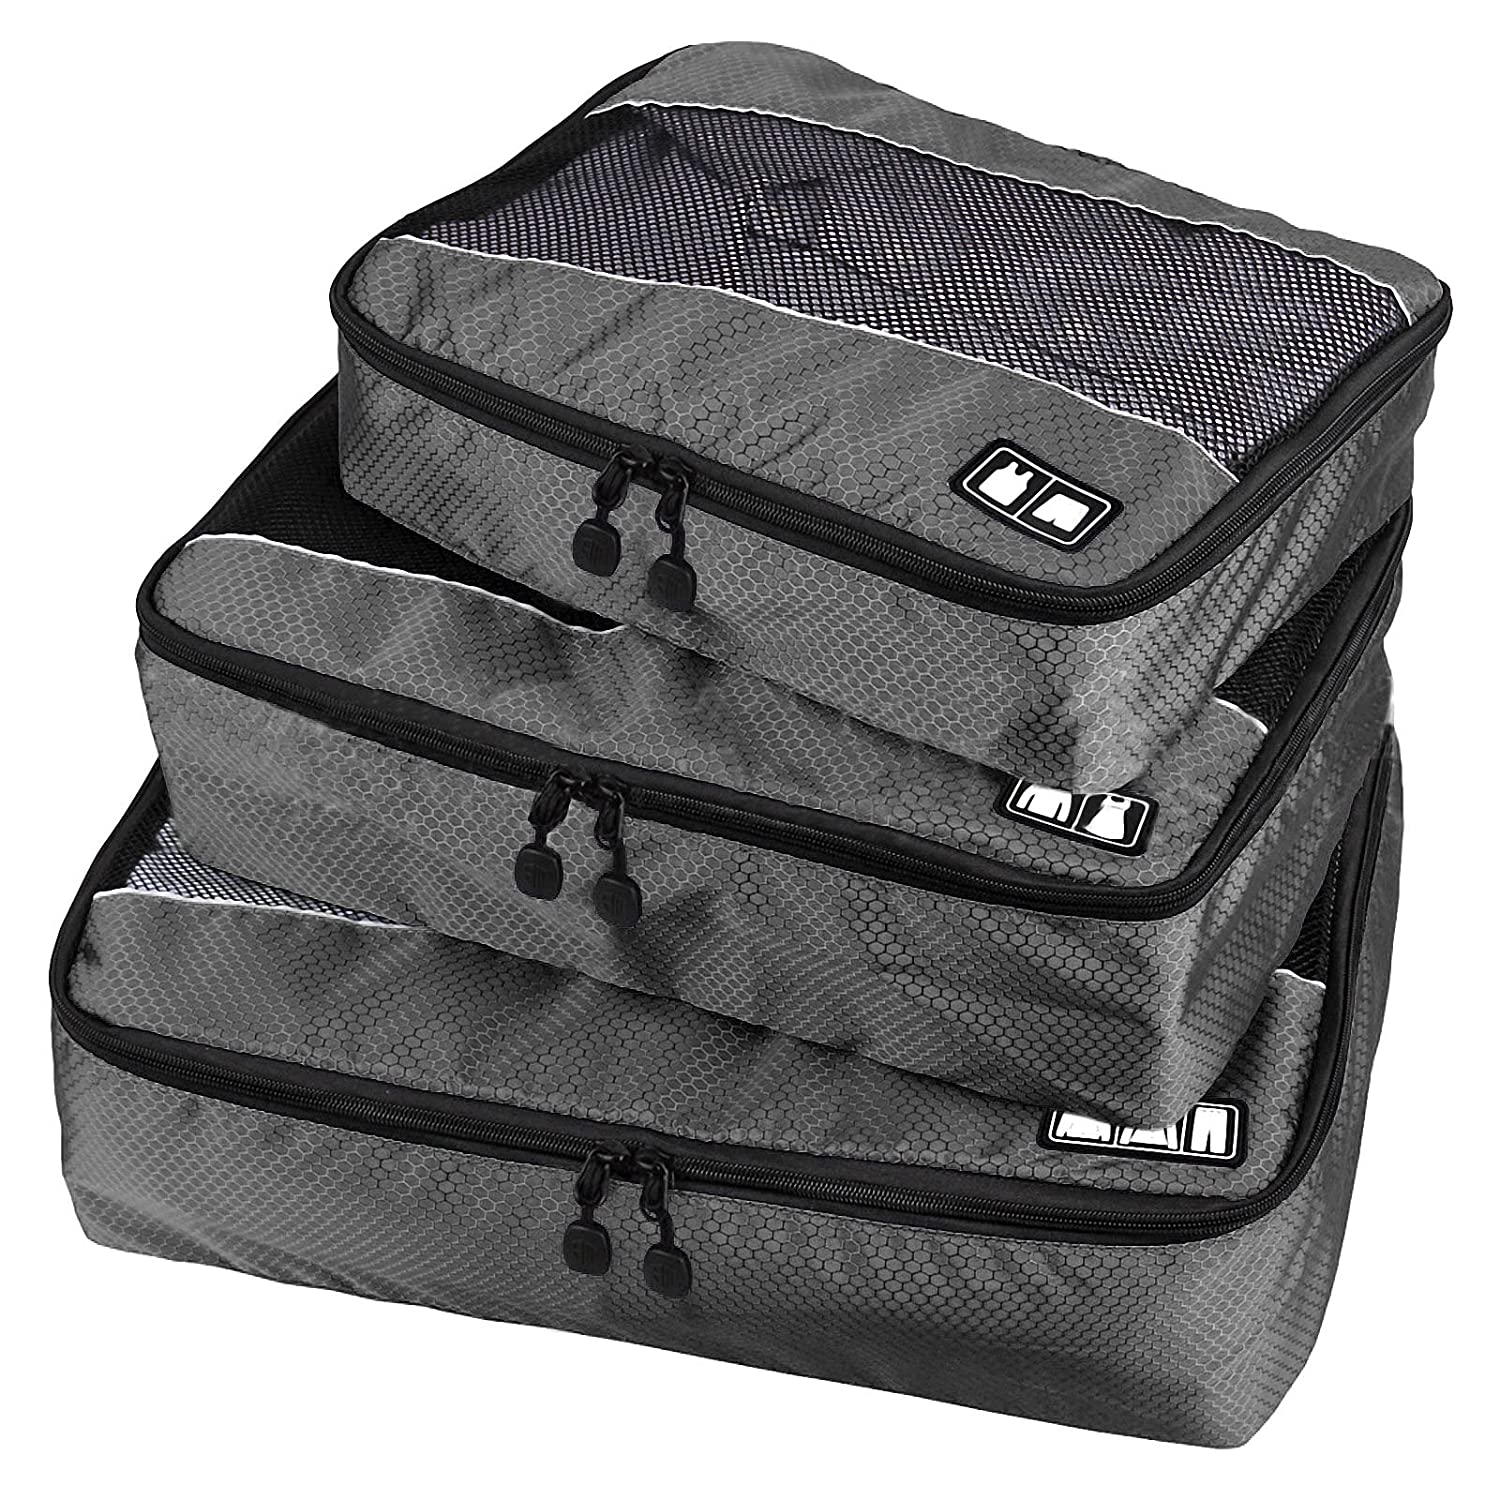 265bc653e21f Amazon.com | Travel Packing Organizers - Clothes Cubes Shoe Bags ...